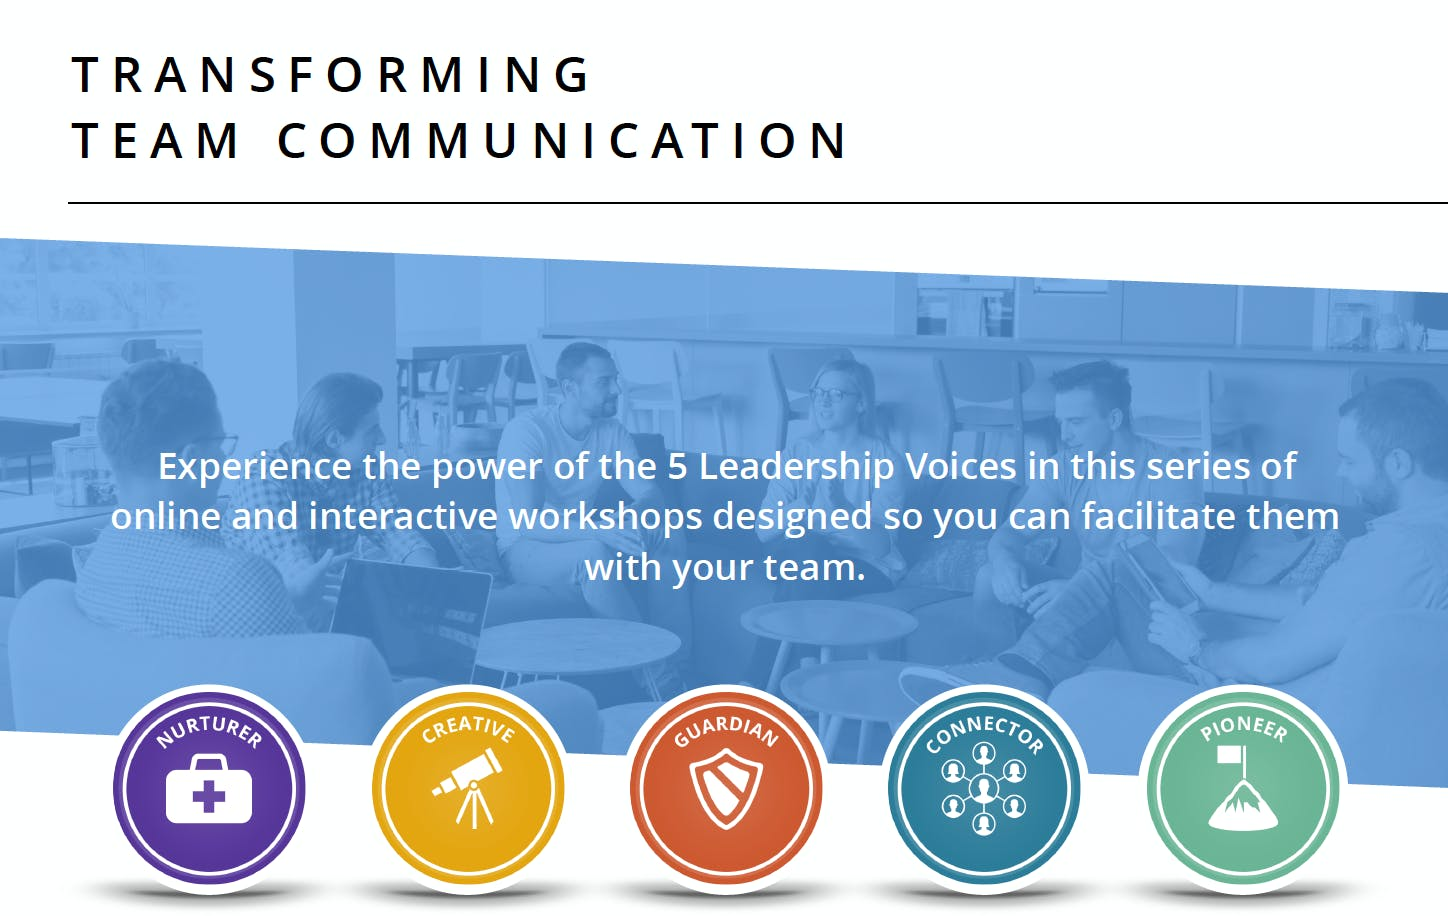 5 LEADERSHIP VOICES: TRANSFORMING TEAM COMMUN